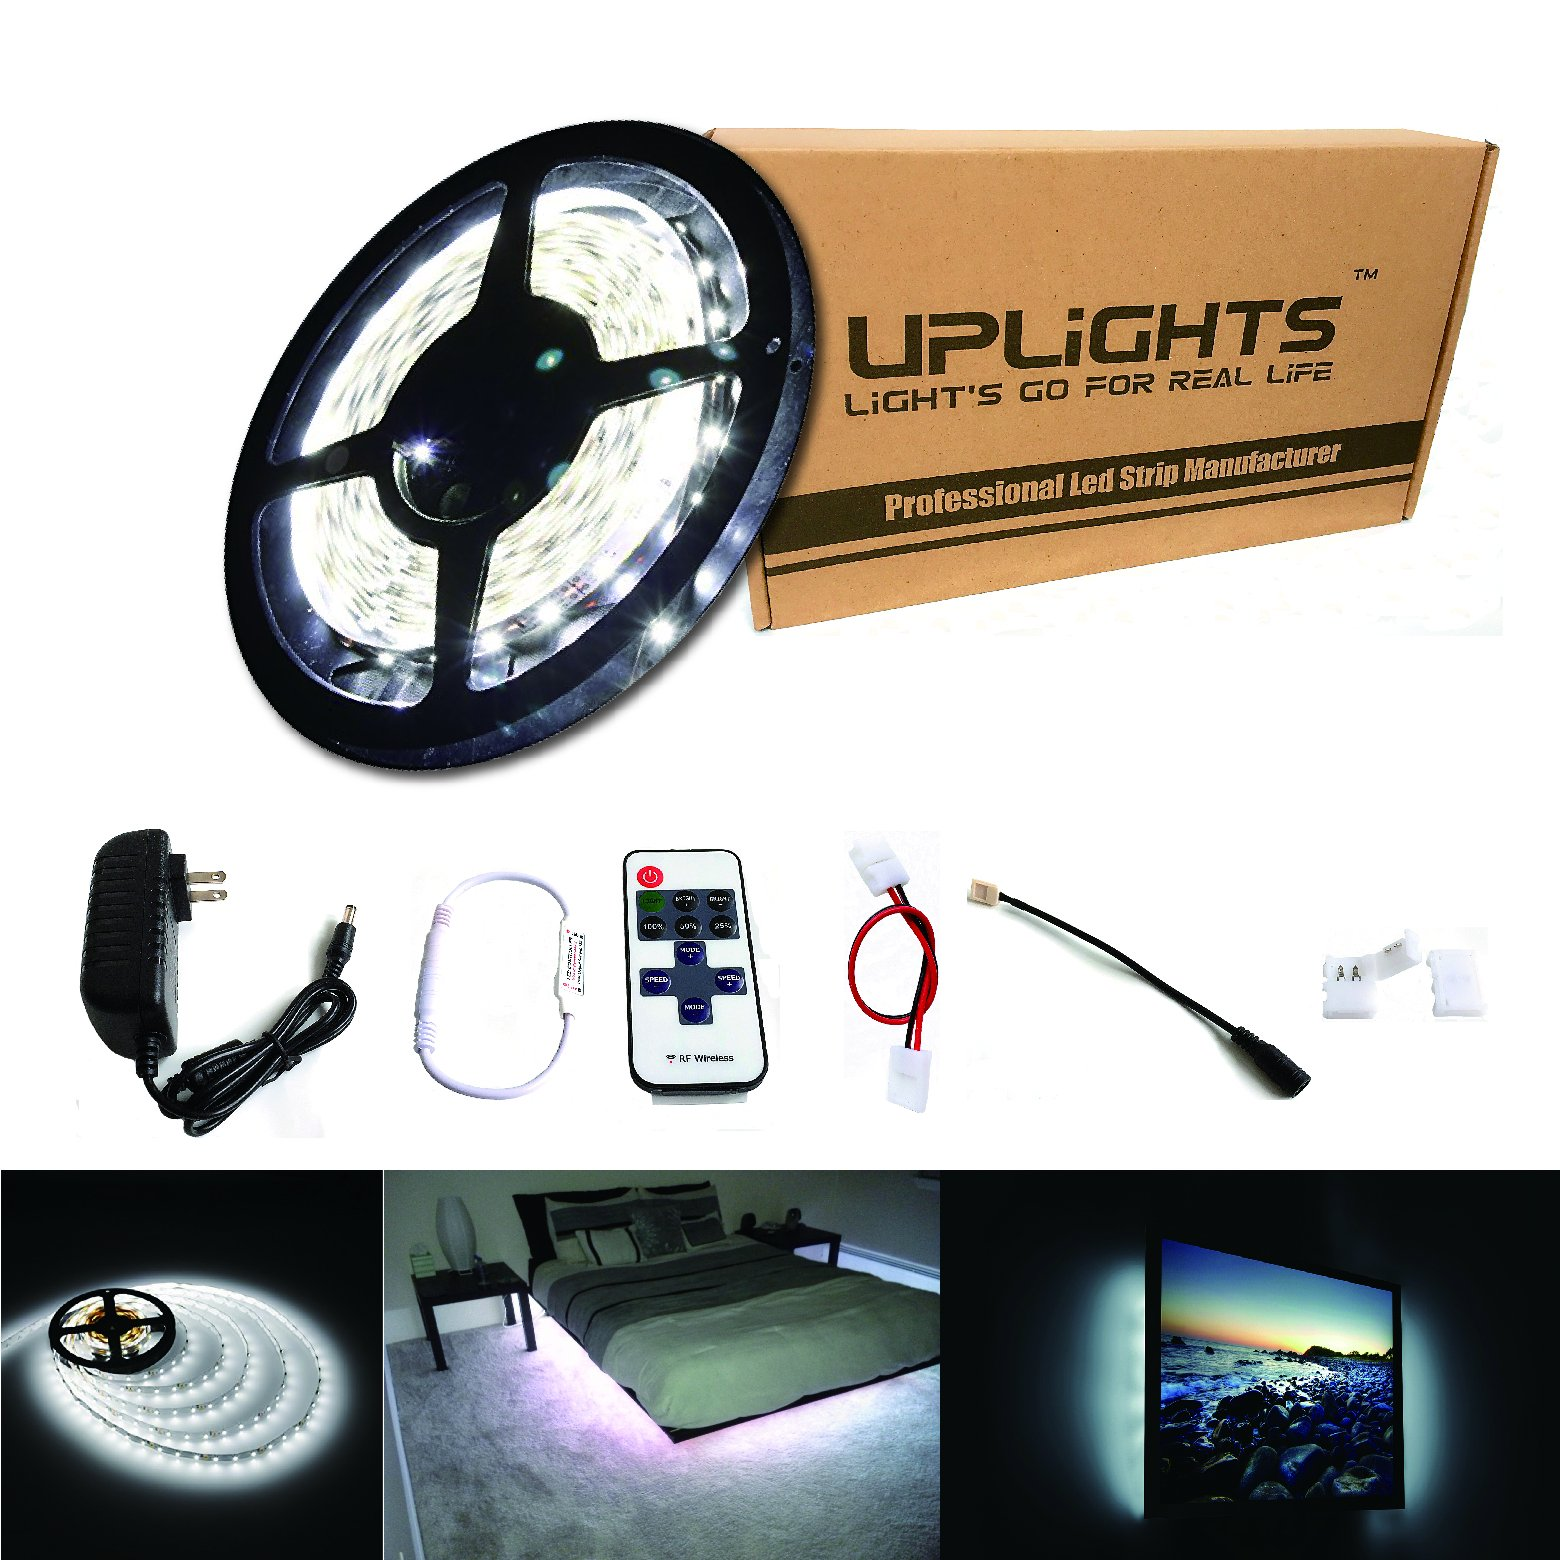 RoLightic LED Strip Light 16.4ft 300leds White 6000K 3528 Led Tape Lights Full Kit with 11key RF Remote Controller & 2A Power Supply for Home Lighting, Kitchen, Indoor Decoration (Pure White)